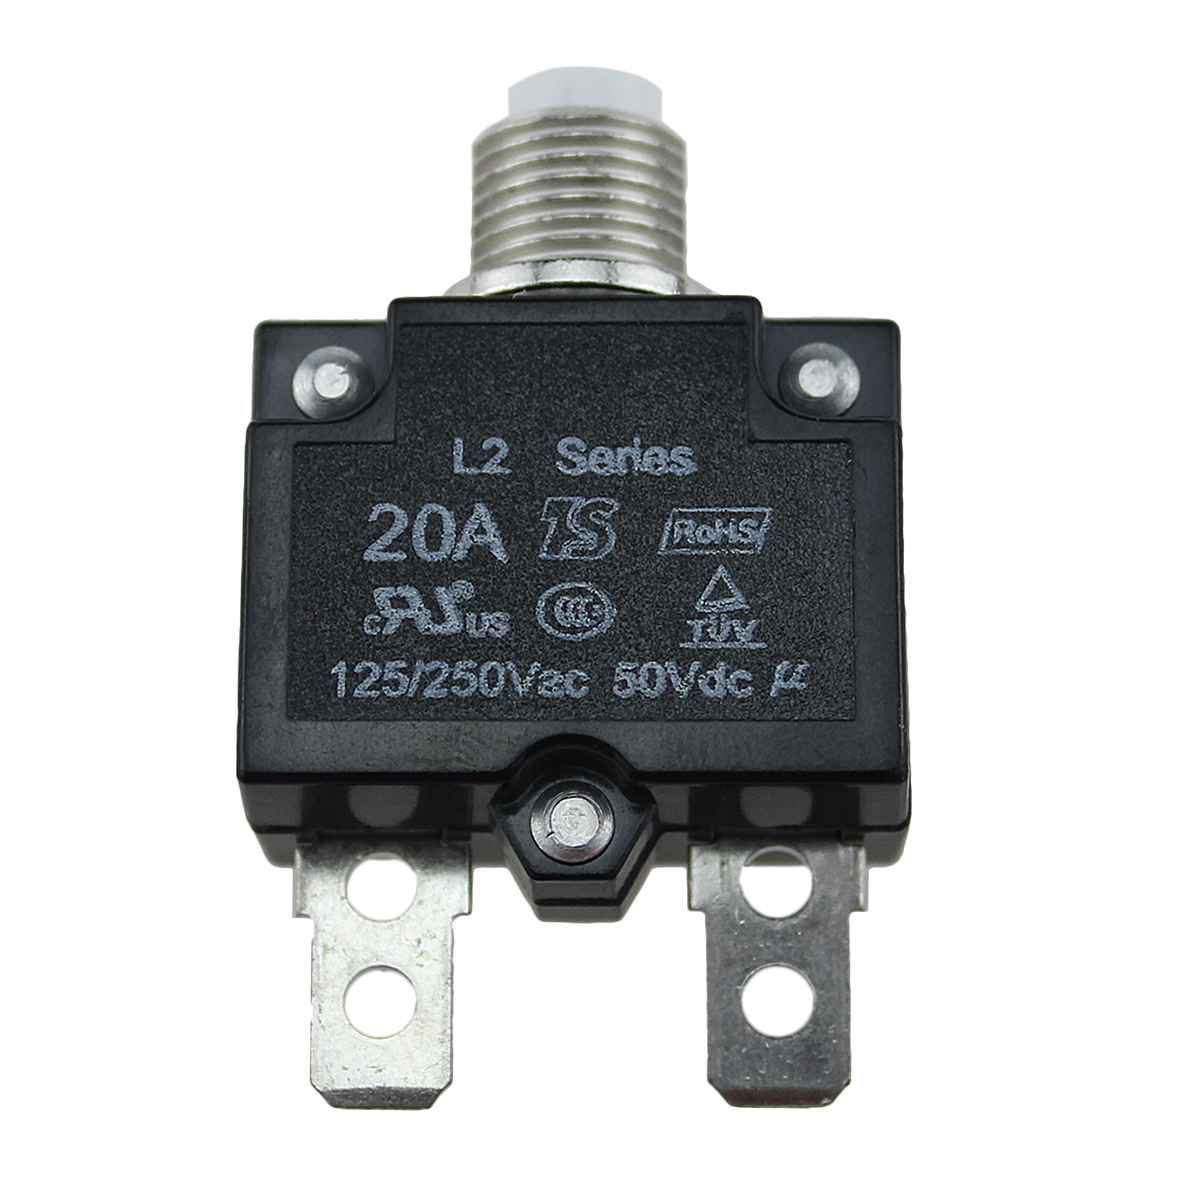 12-24V-Push-Button-Resettable-Thermal-Circuit-Breaker-Panel-Mount-5-10-15-20-AMP